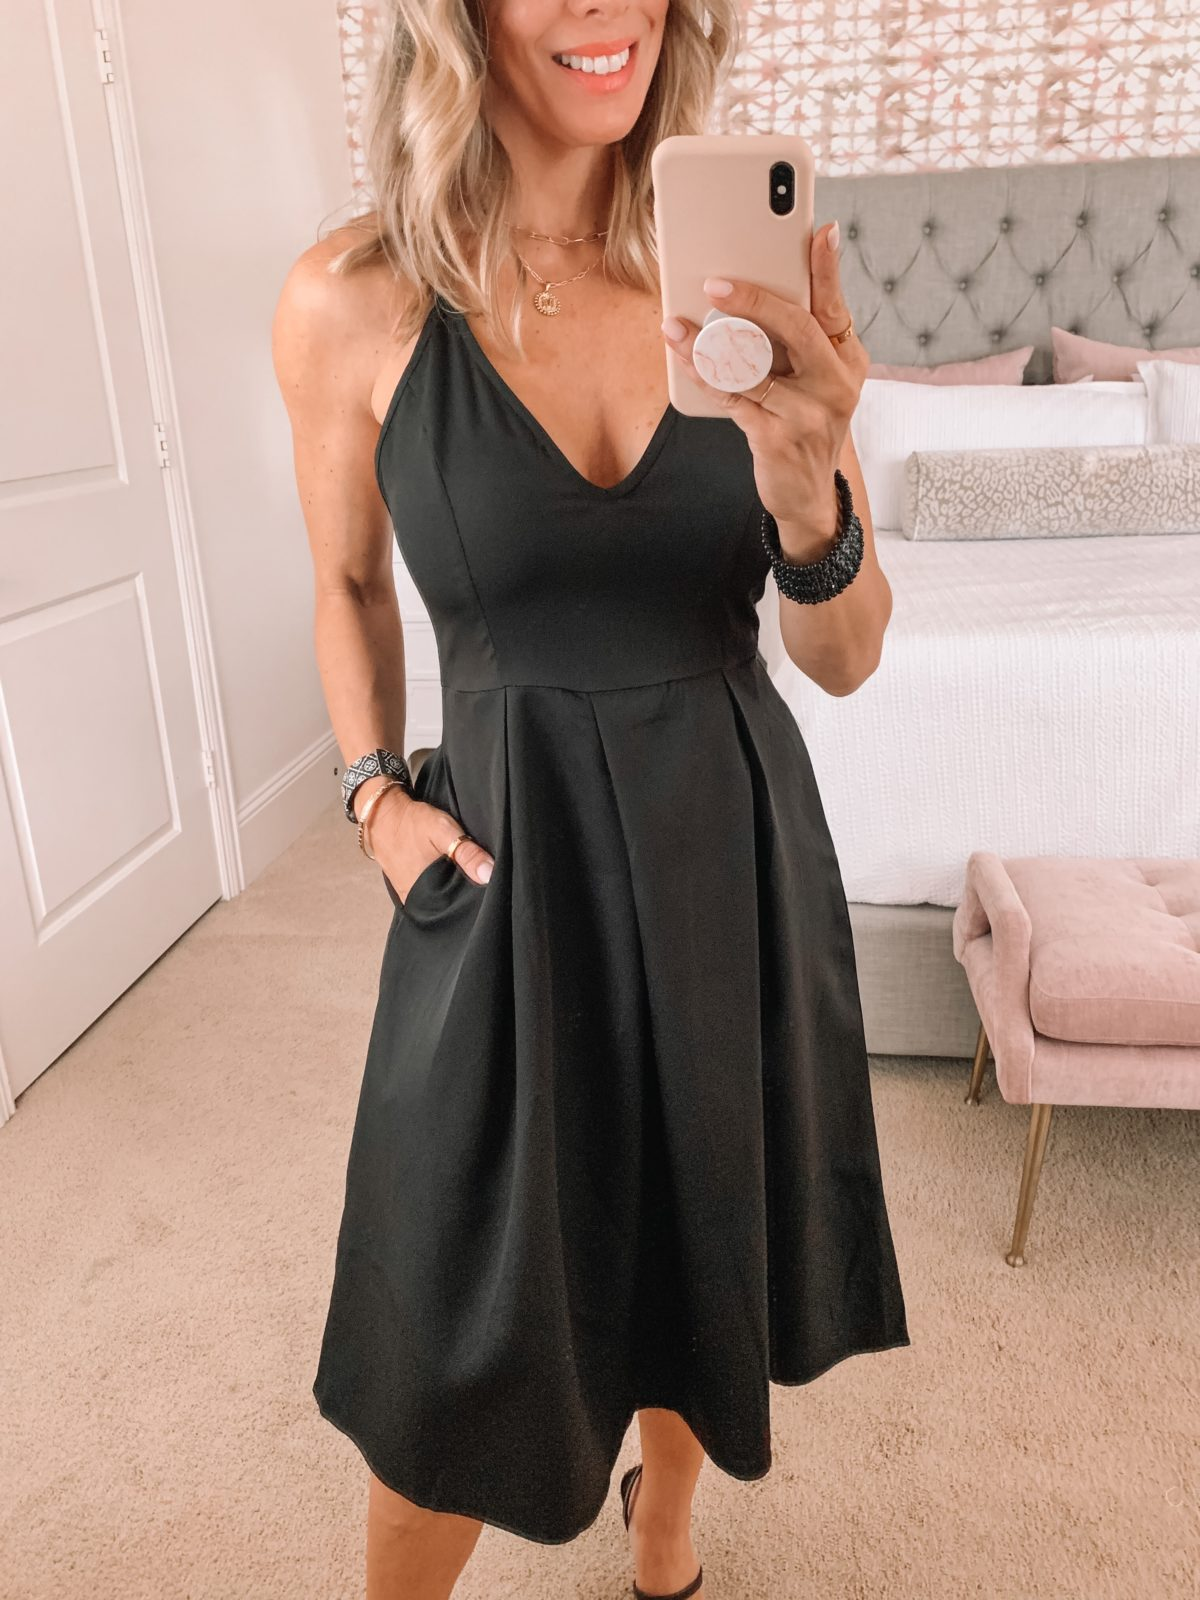 Amazon Fashion Faves, Black V Neck, Fit and Flare dress and Heels